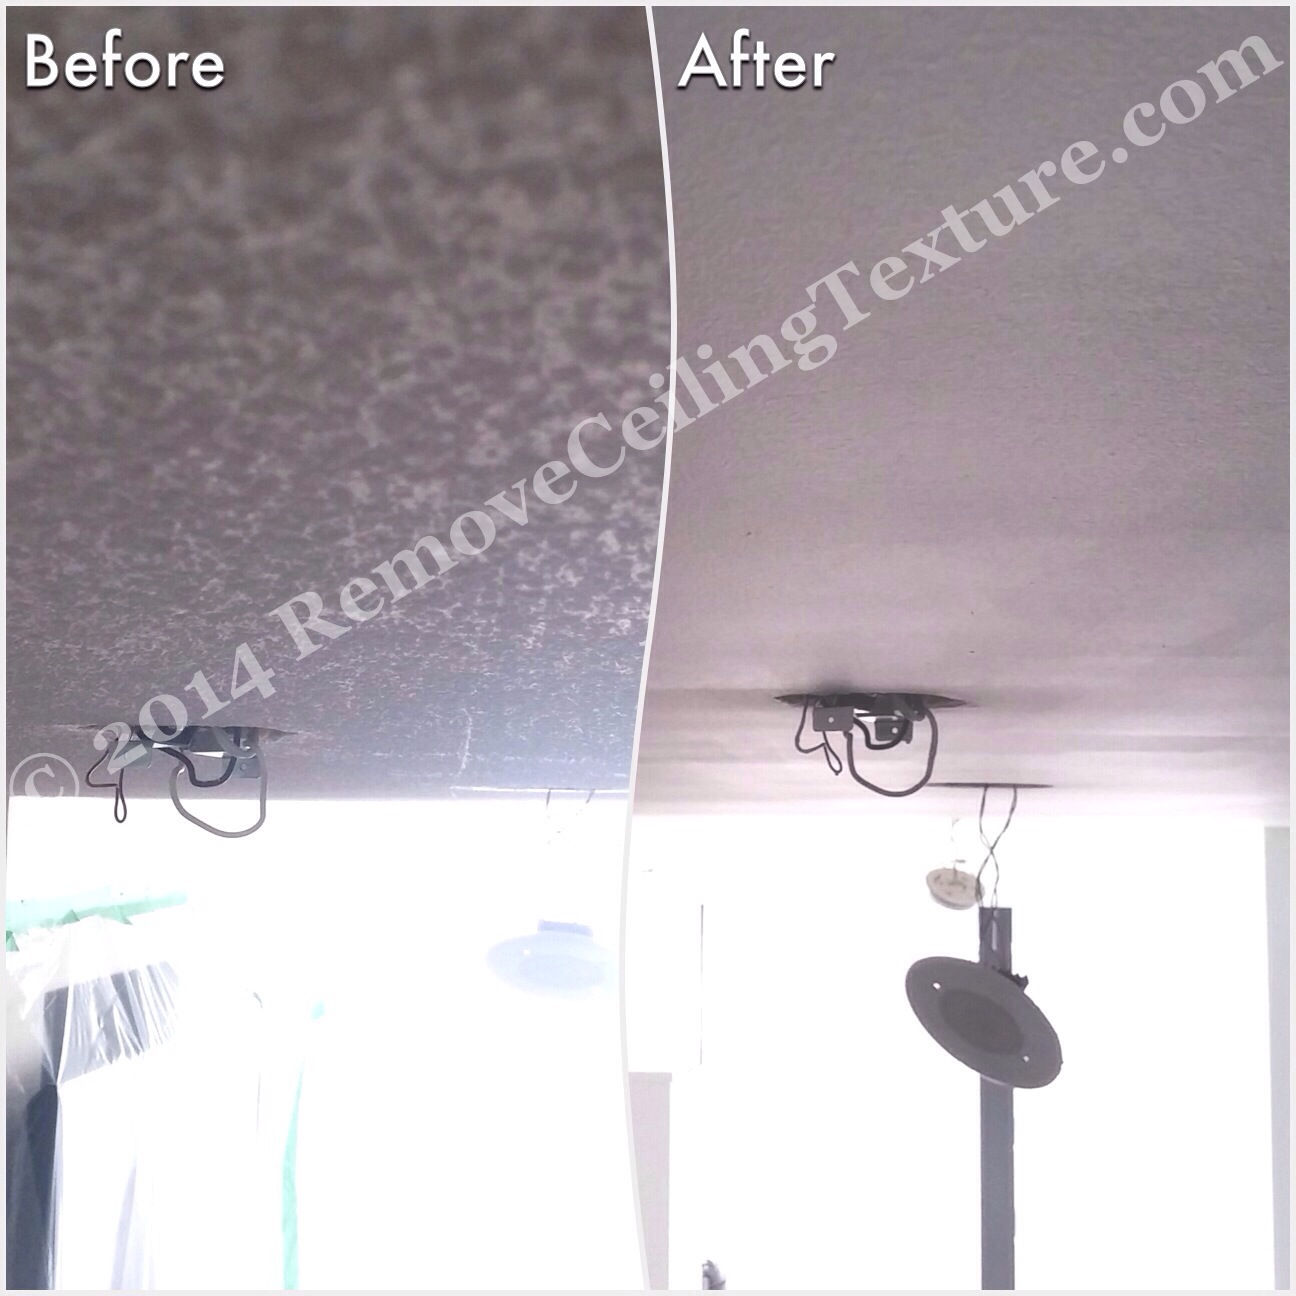 Removing ceiling texture in the living room of a condo at 1723 Alberni St.